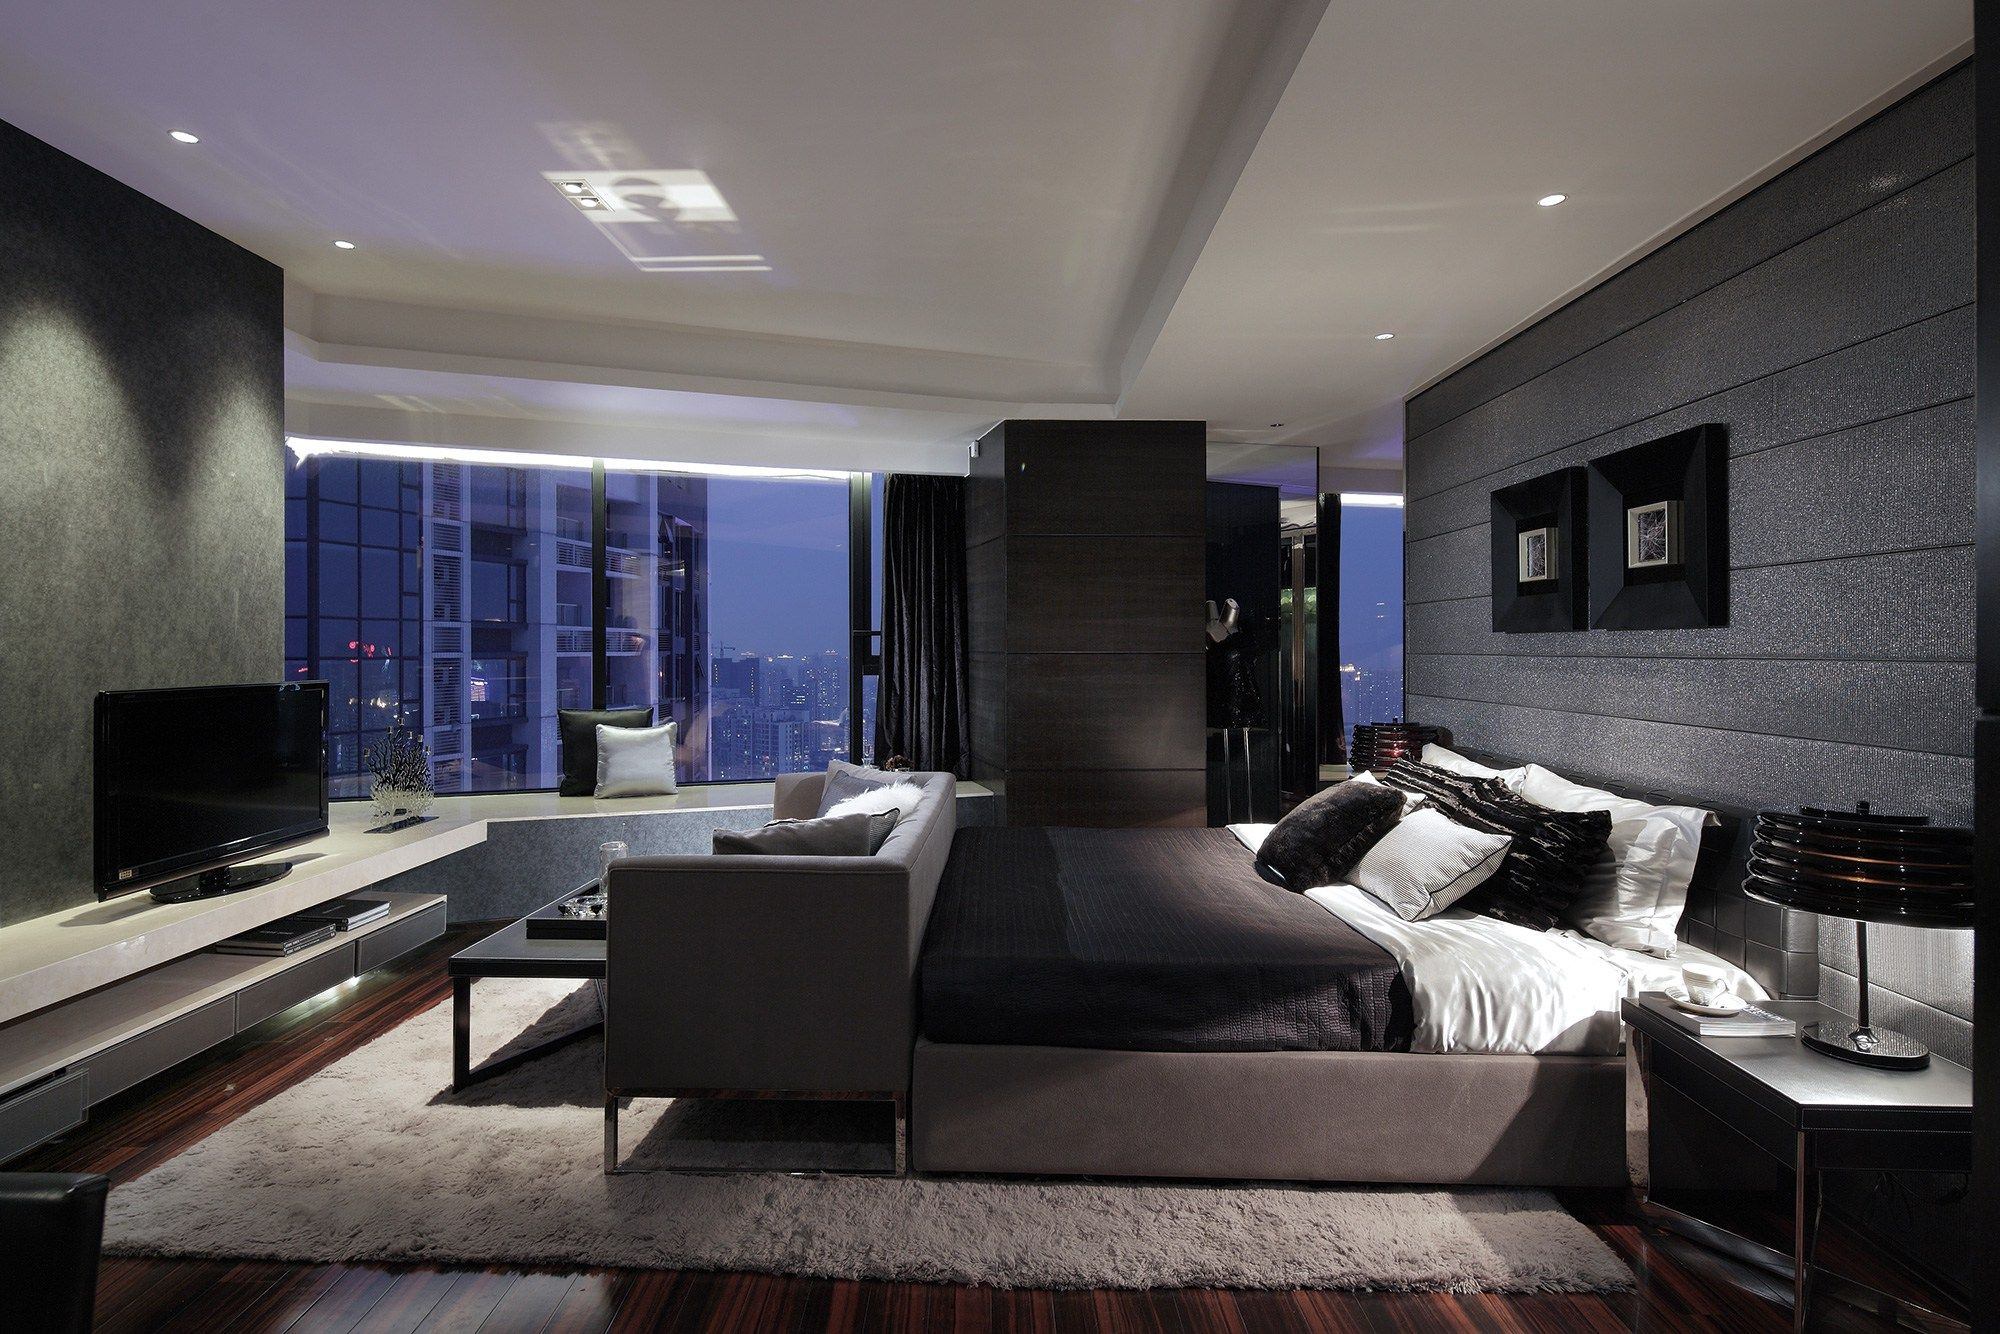 Nice Modern Master Bedrooms Images Pictures Becuo Master Bedroom Sugar Bowl Residence Interieur Slaapkamer Slaapkamer Modern Slaapkamer Interieur